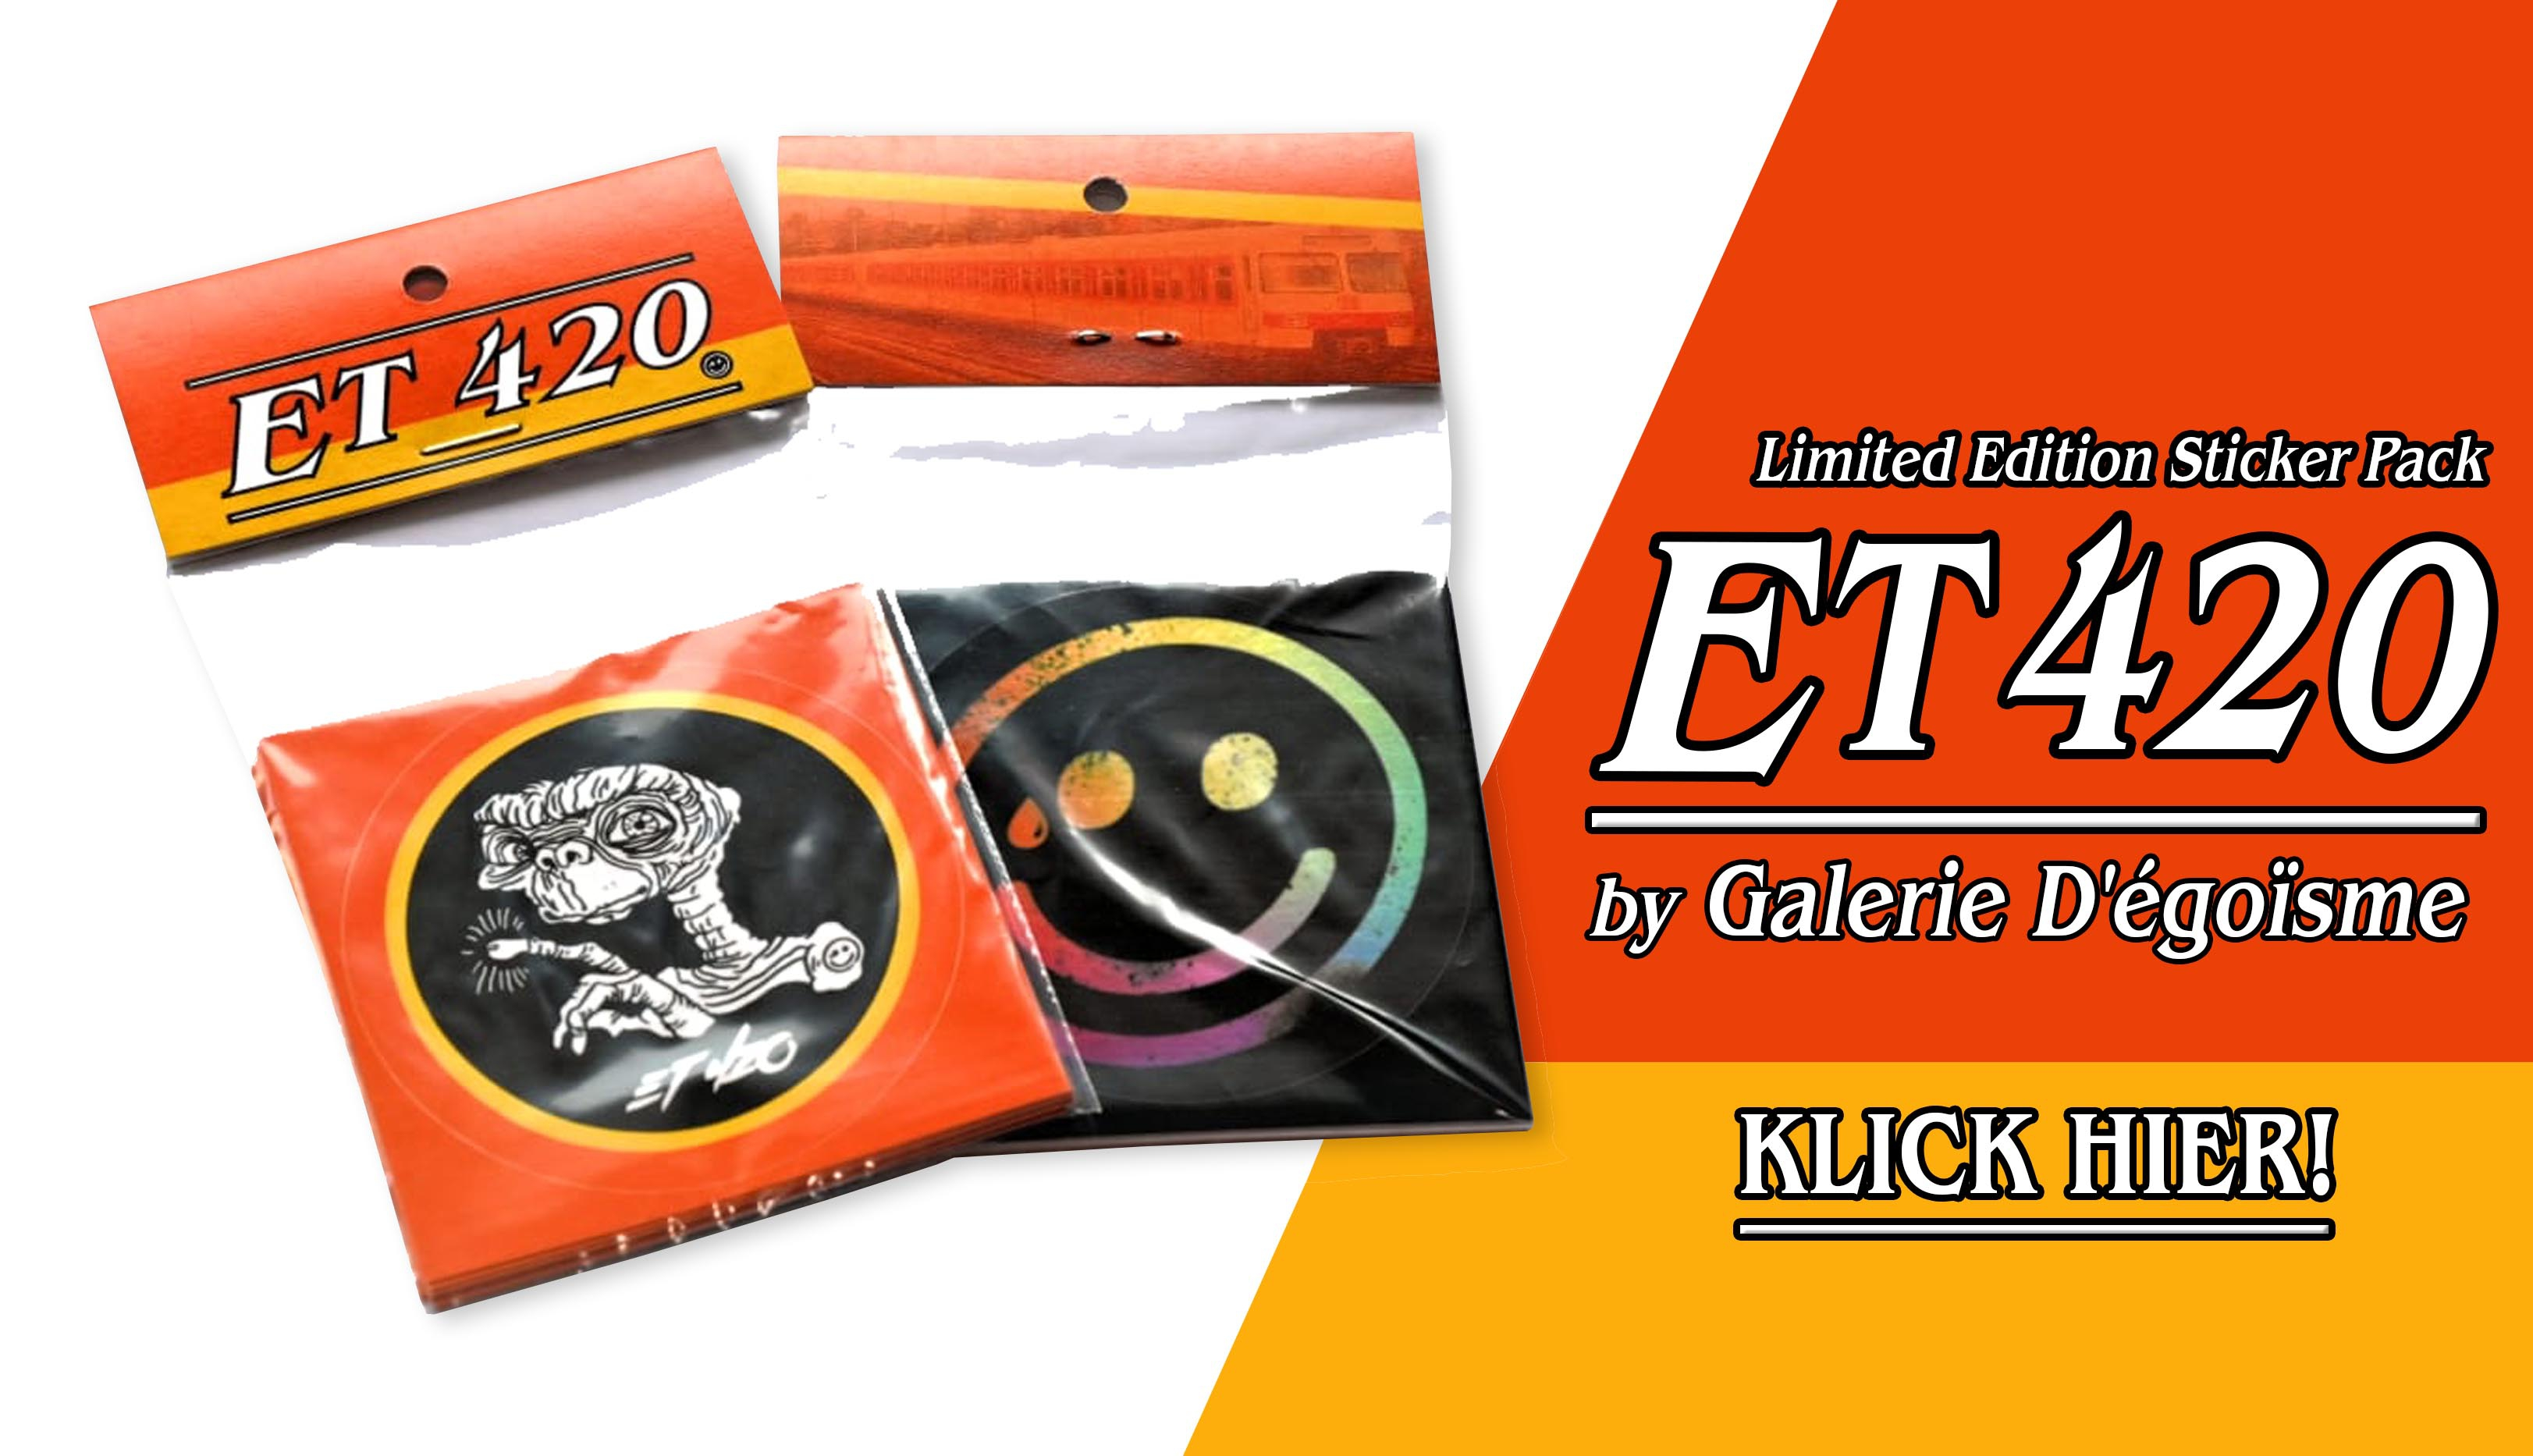 Galerie Degoisme E.T. 420 Limited Sticker Set bei dedicated online kaufen!